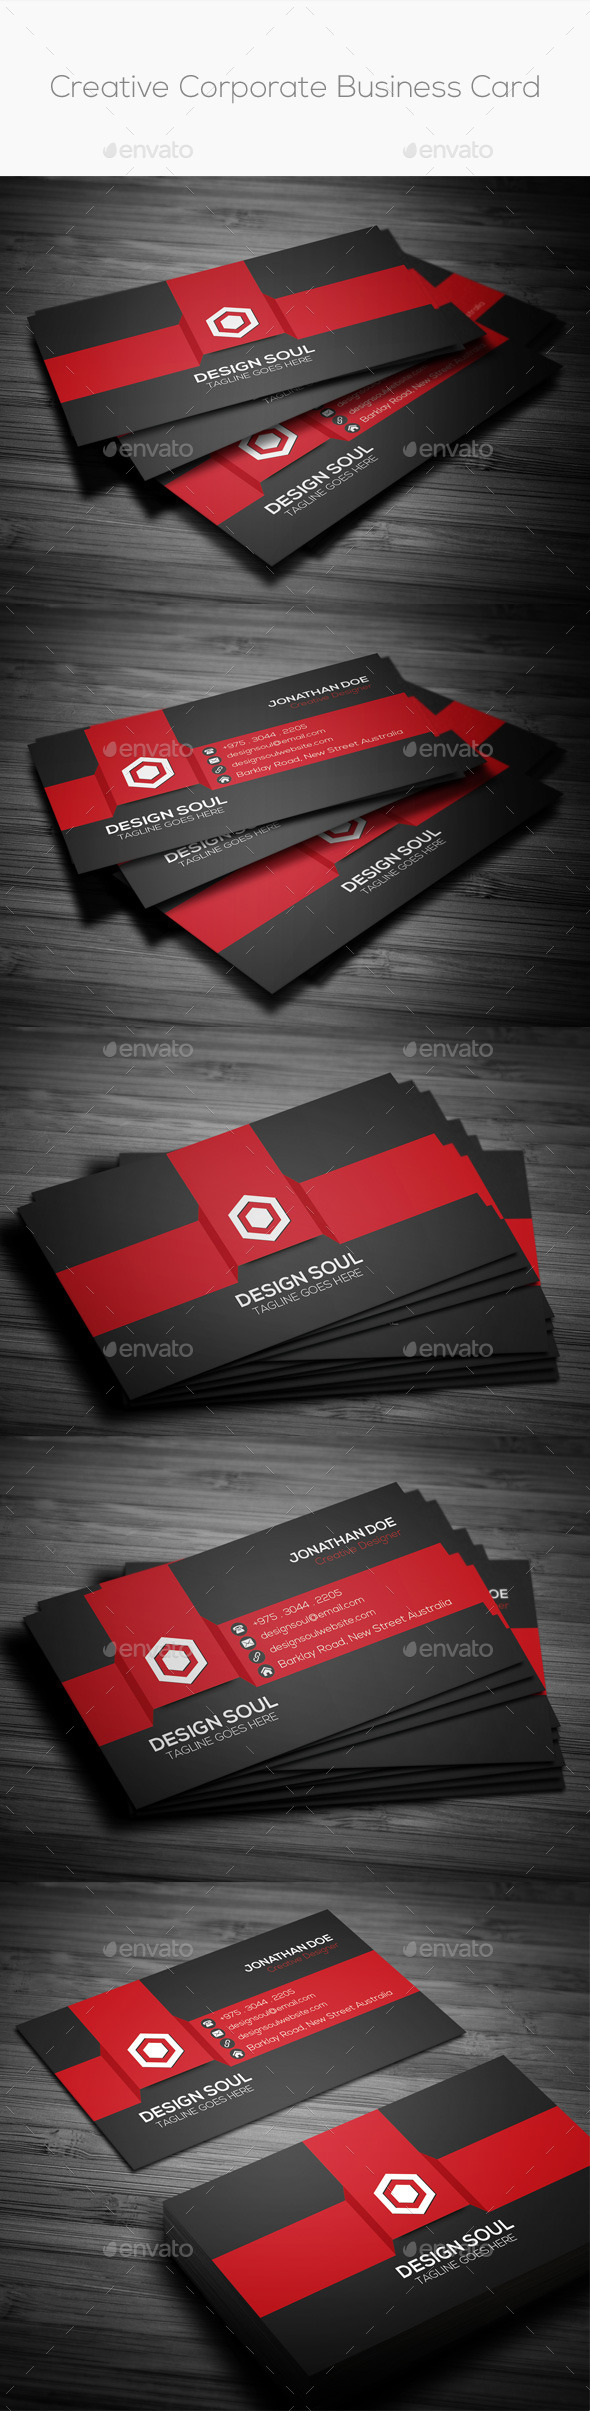 GraphicRiver Creative Corporate Business Card 8831181